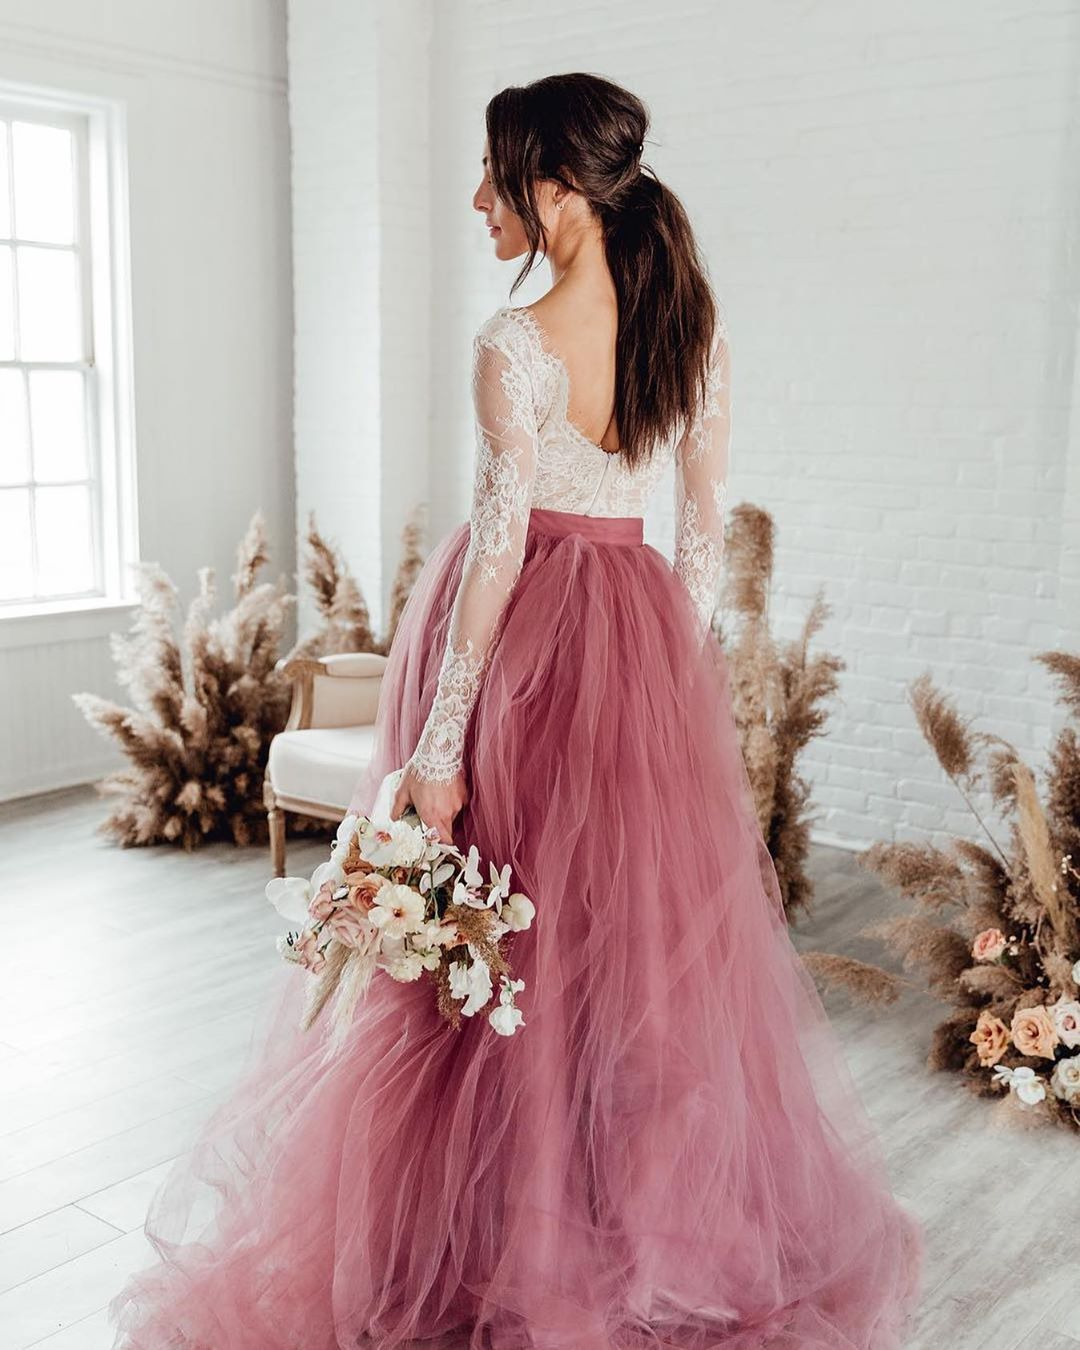 Sexy Vintage Candy Pink Lace Long Sleeves Plus Size Beach Boho Wedding Dress Gowns 2019 Bride Dress Vestido De Noiva Gelinlik